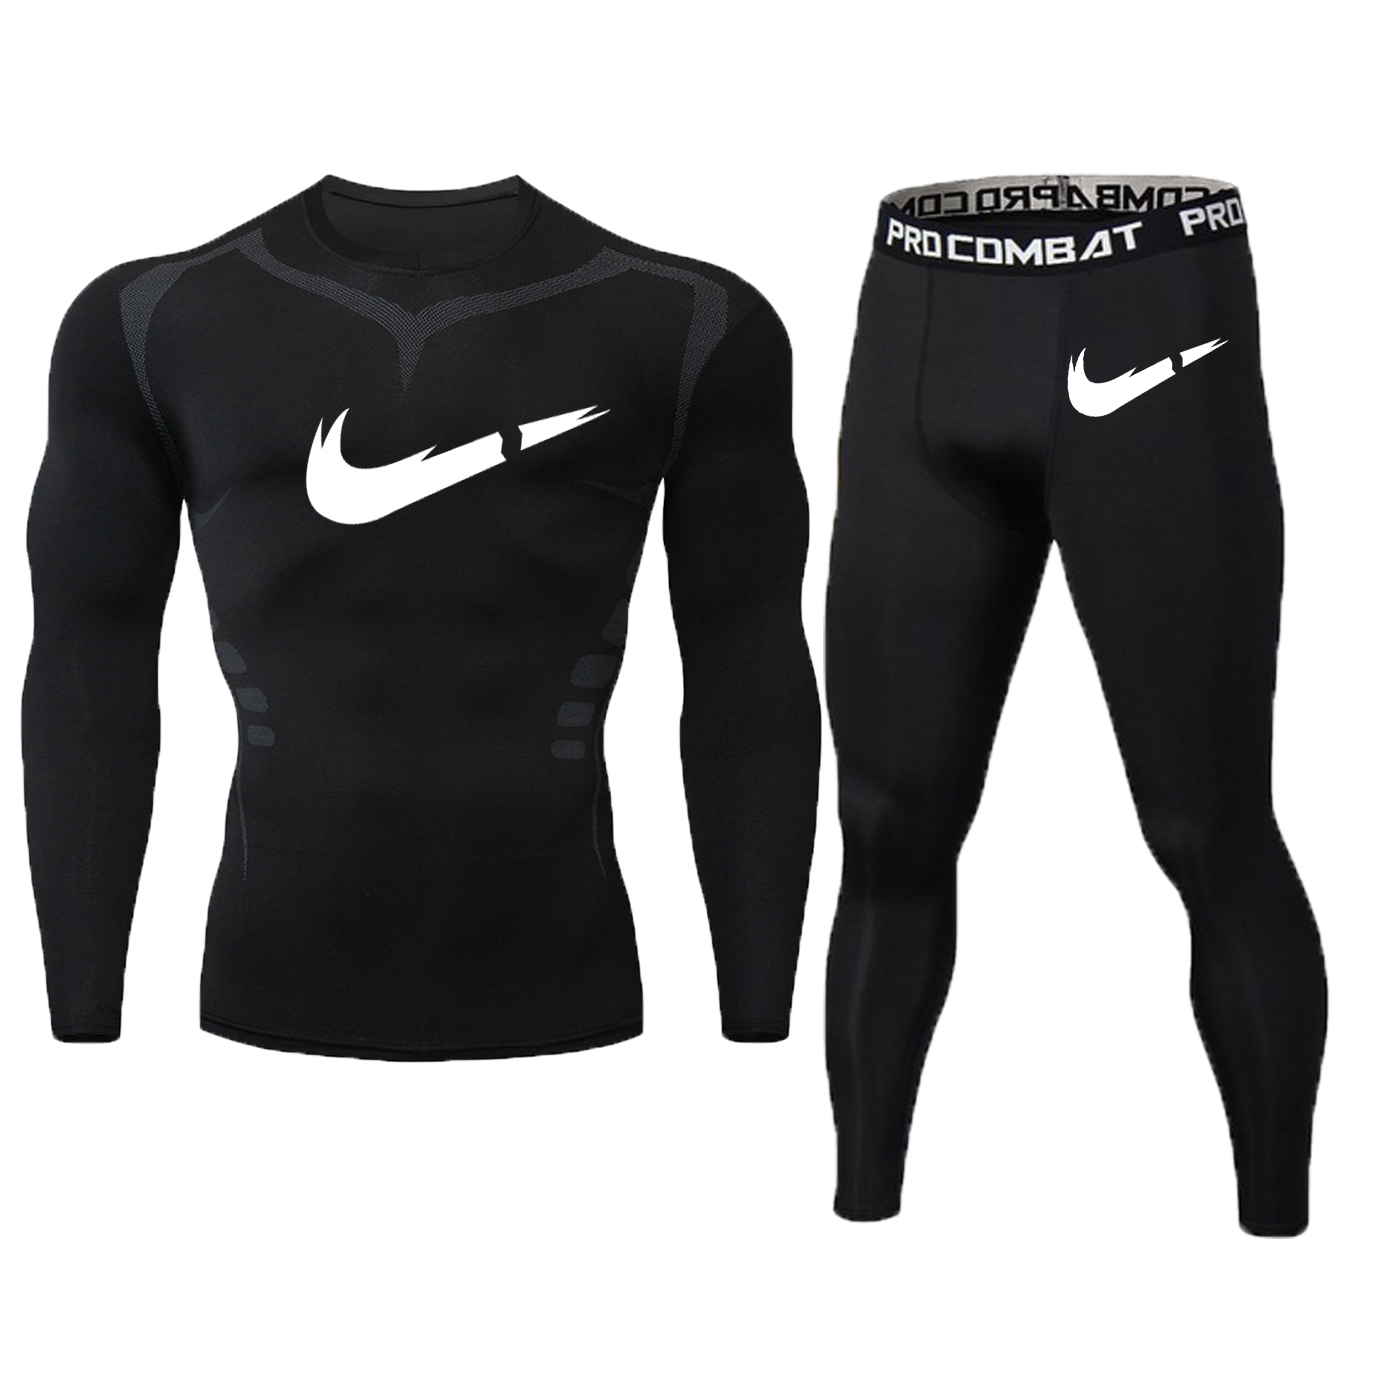 New Fitness Men's Set Pure Black Compression Top + Leggings Underwear Crossfit Long Sleeve + Short Sleeve T Shirt Apparel Set-in Men's Sets from Men's Clothing